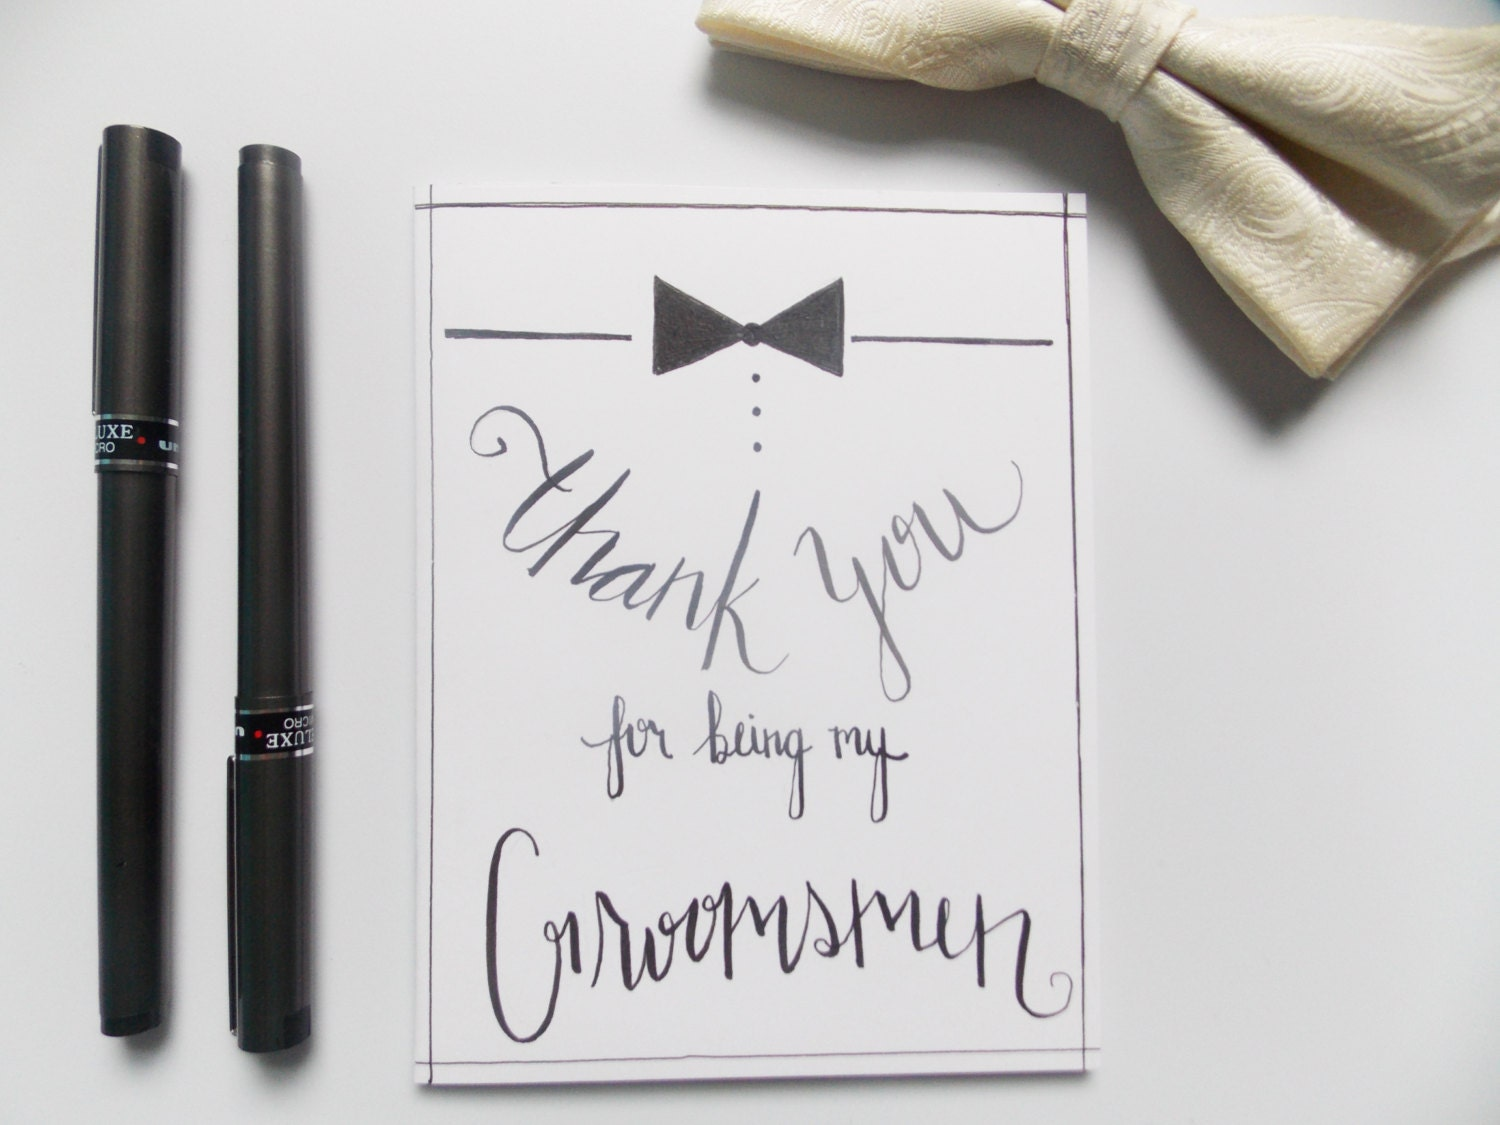 groomsman gift thank you for being my groomsman card thank